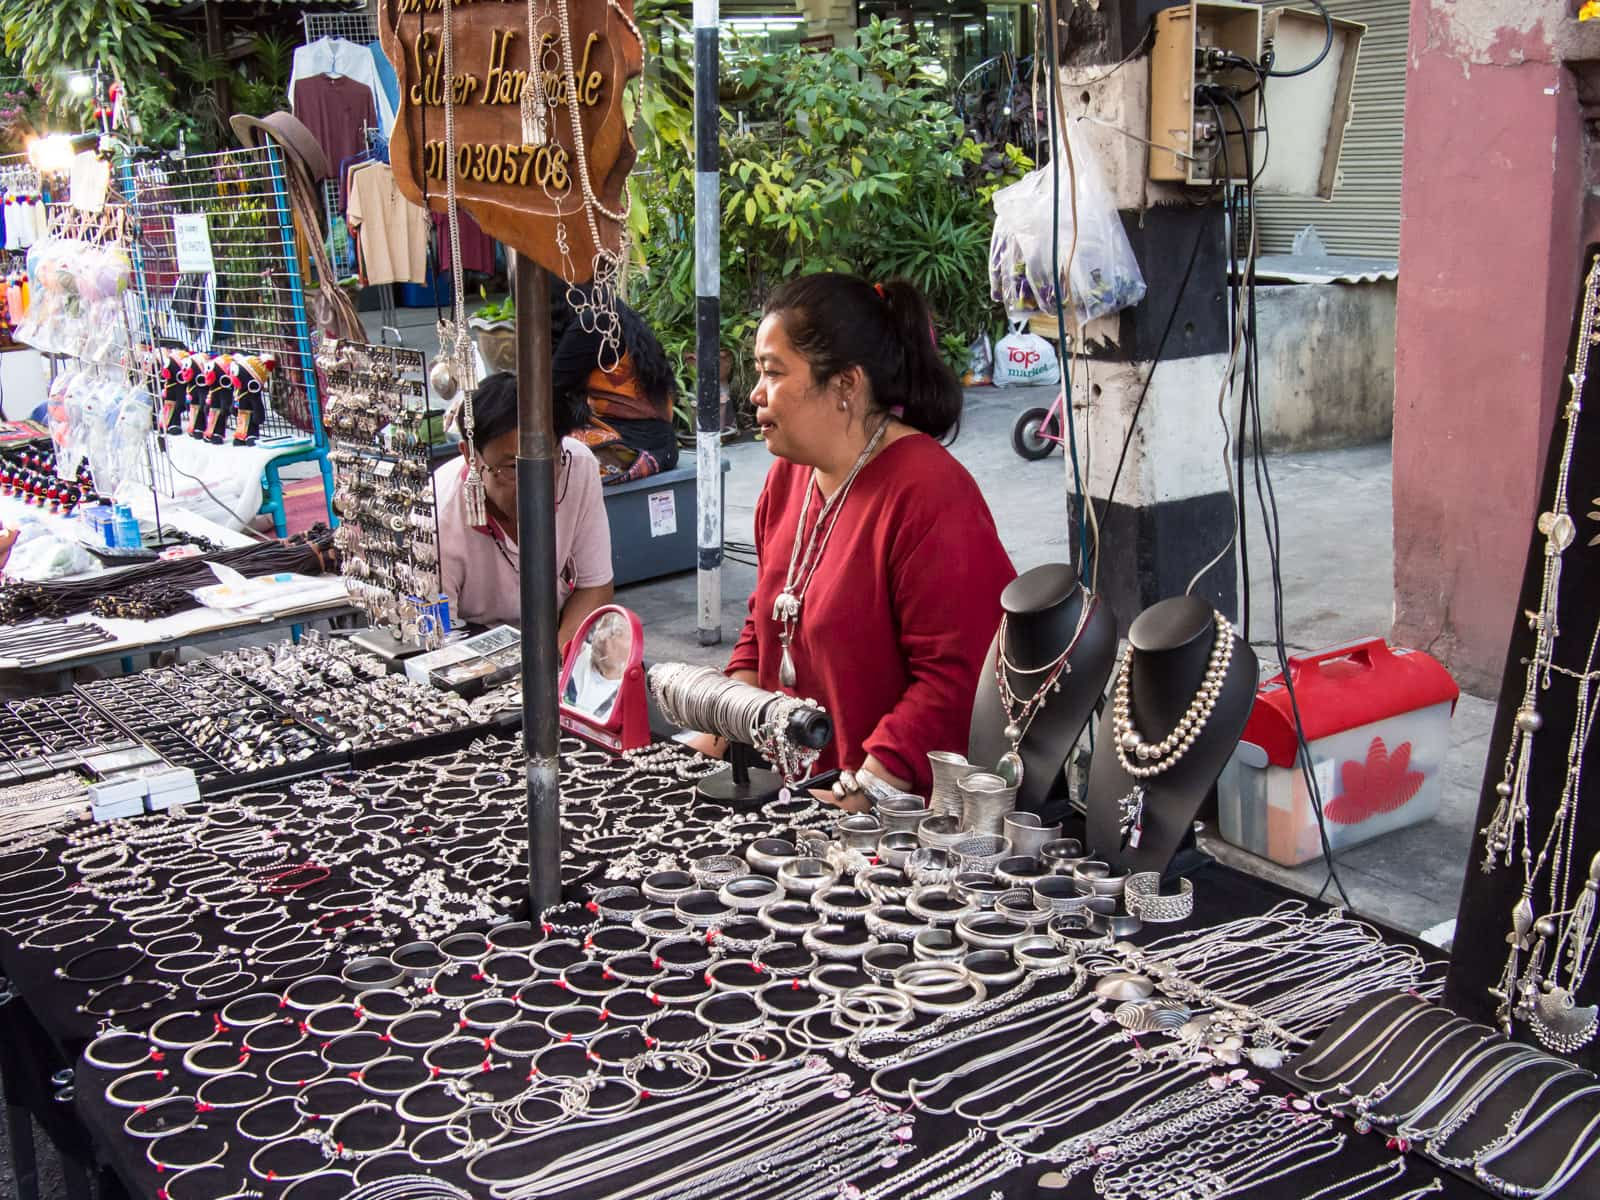 Woman selling silver jewelry at night market